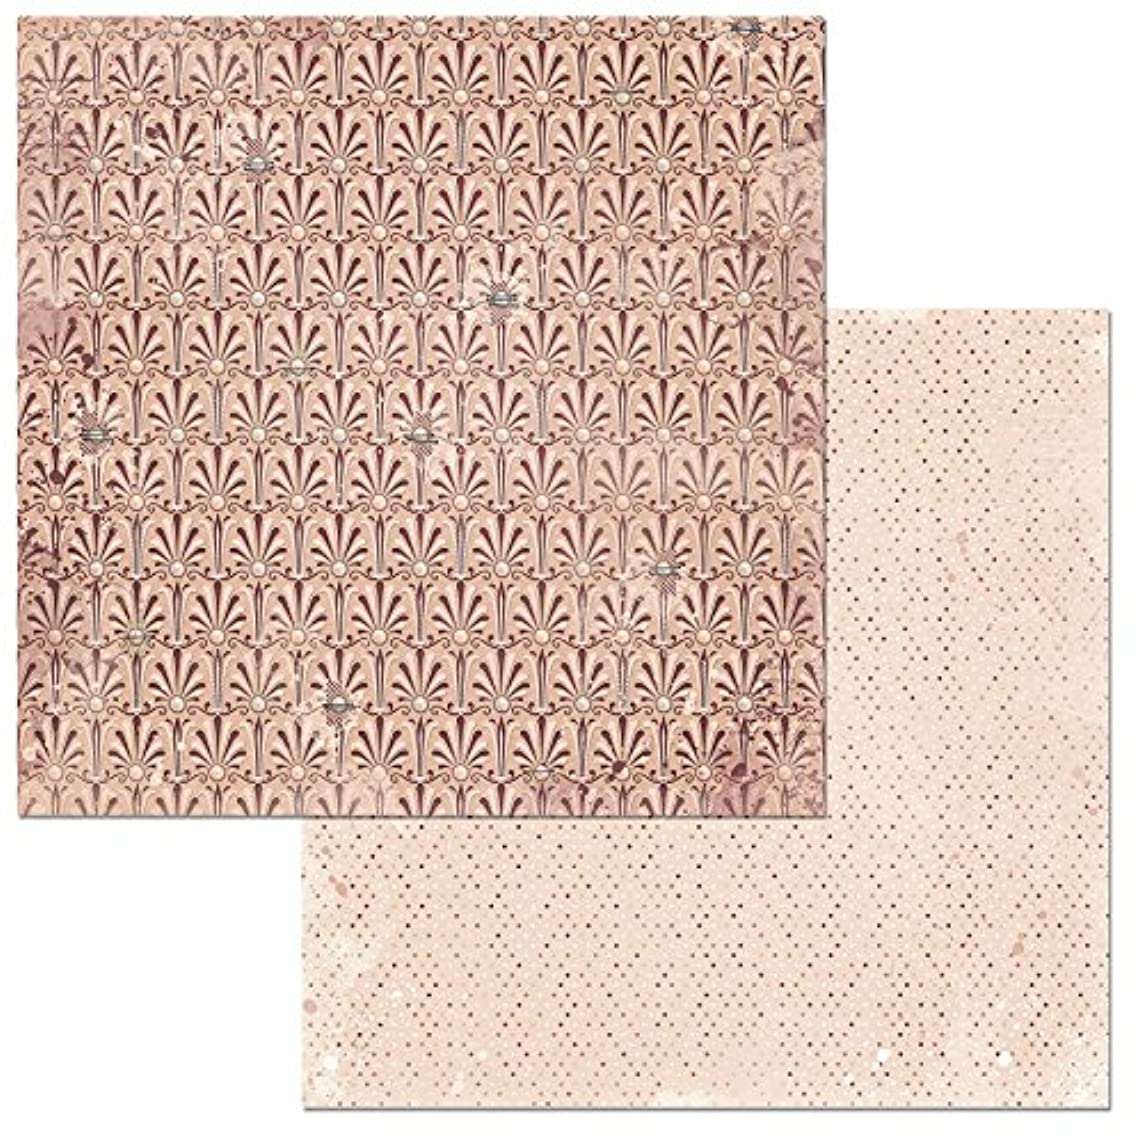 Bo Bunny Demure Patterned Paper, 25 Piece